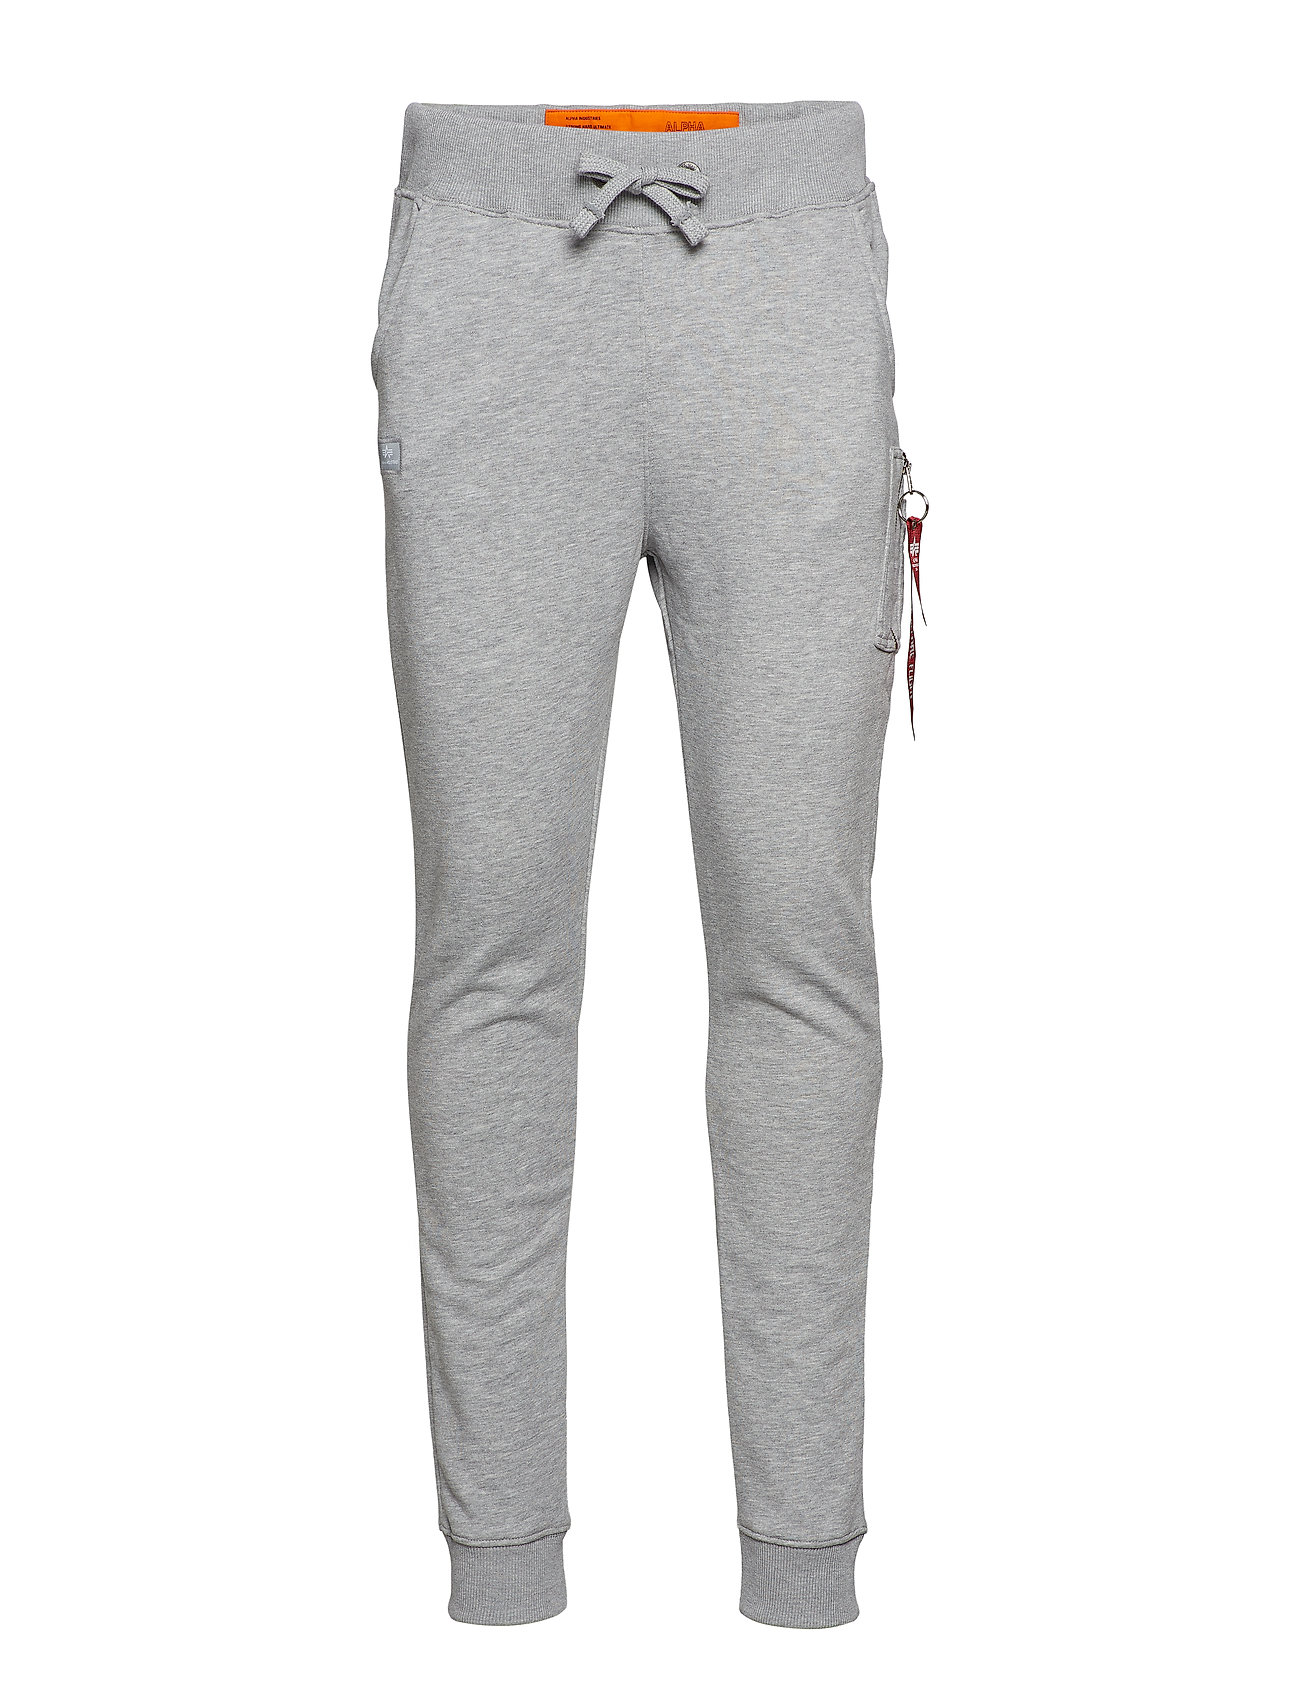 Alpha Industries X-Fit Slim Cargo Pant - GREY HEATHER